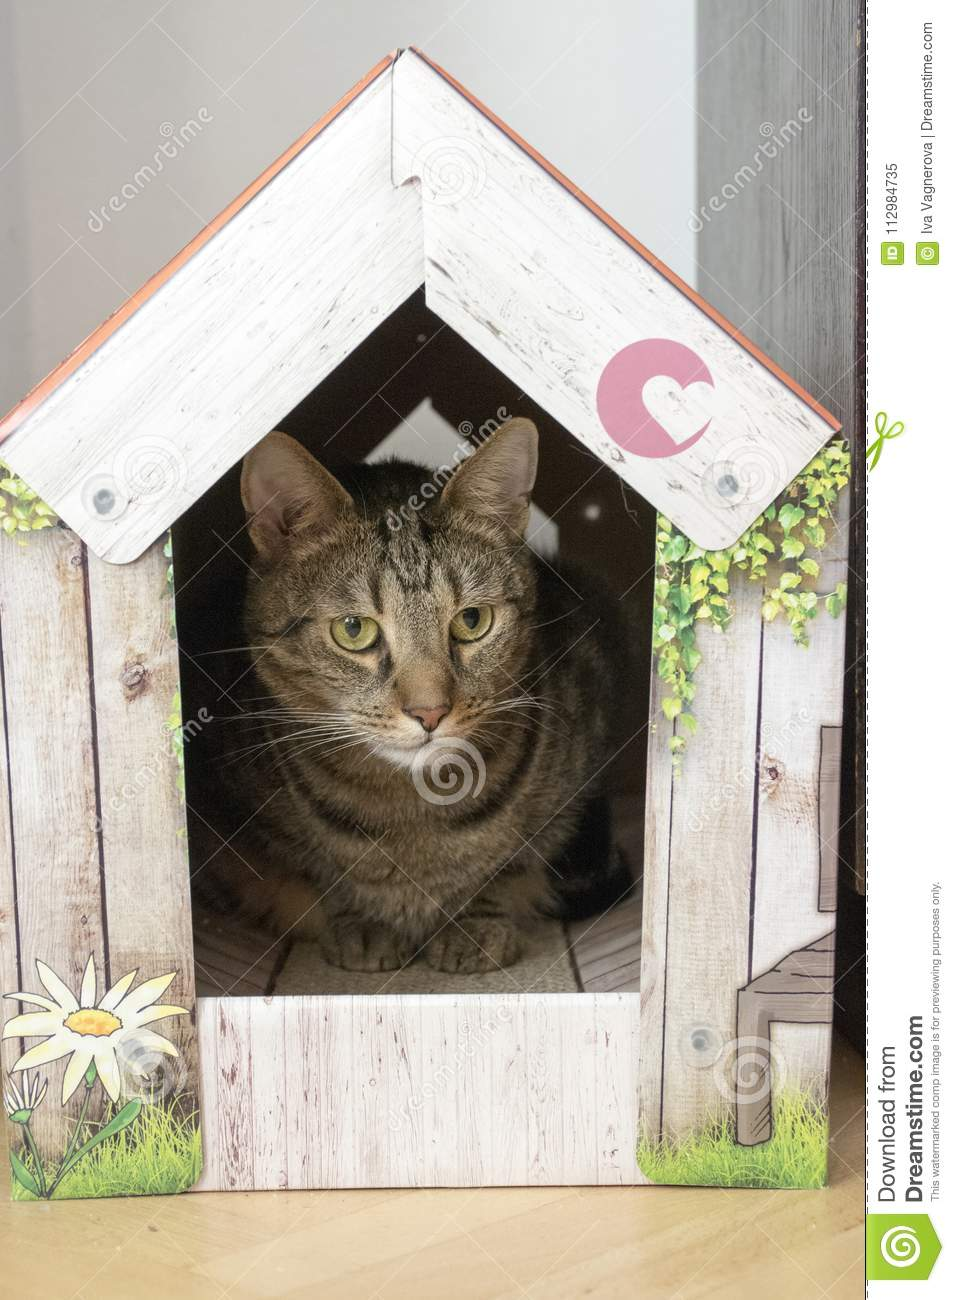 Funny marble cat in carboard handcraft house